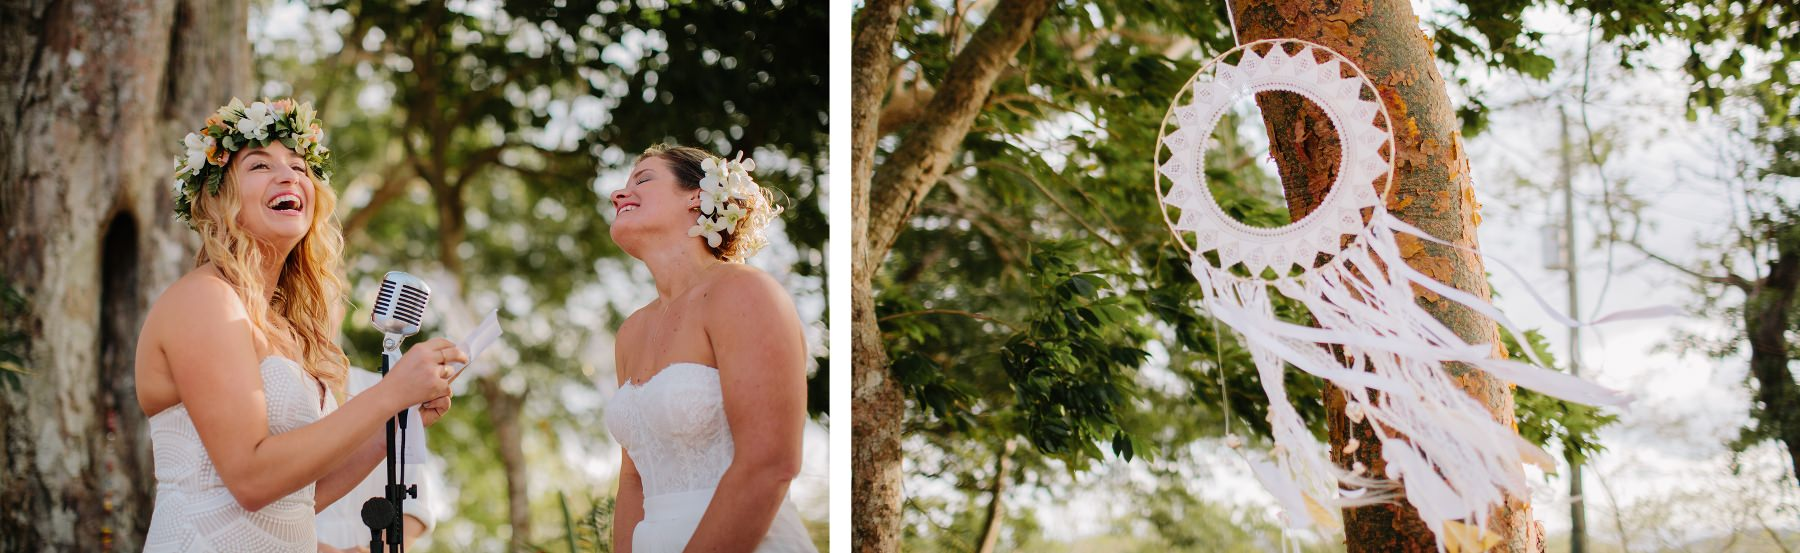 Boho Same-sex wedding photography Tropical destination wedding Costa Rica